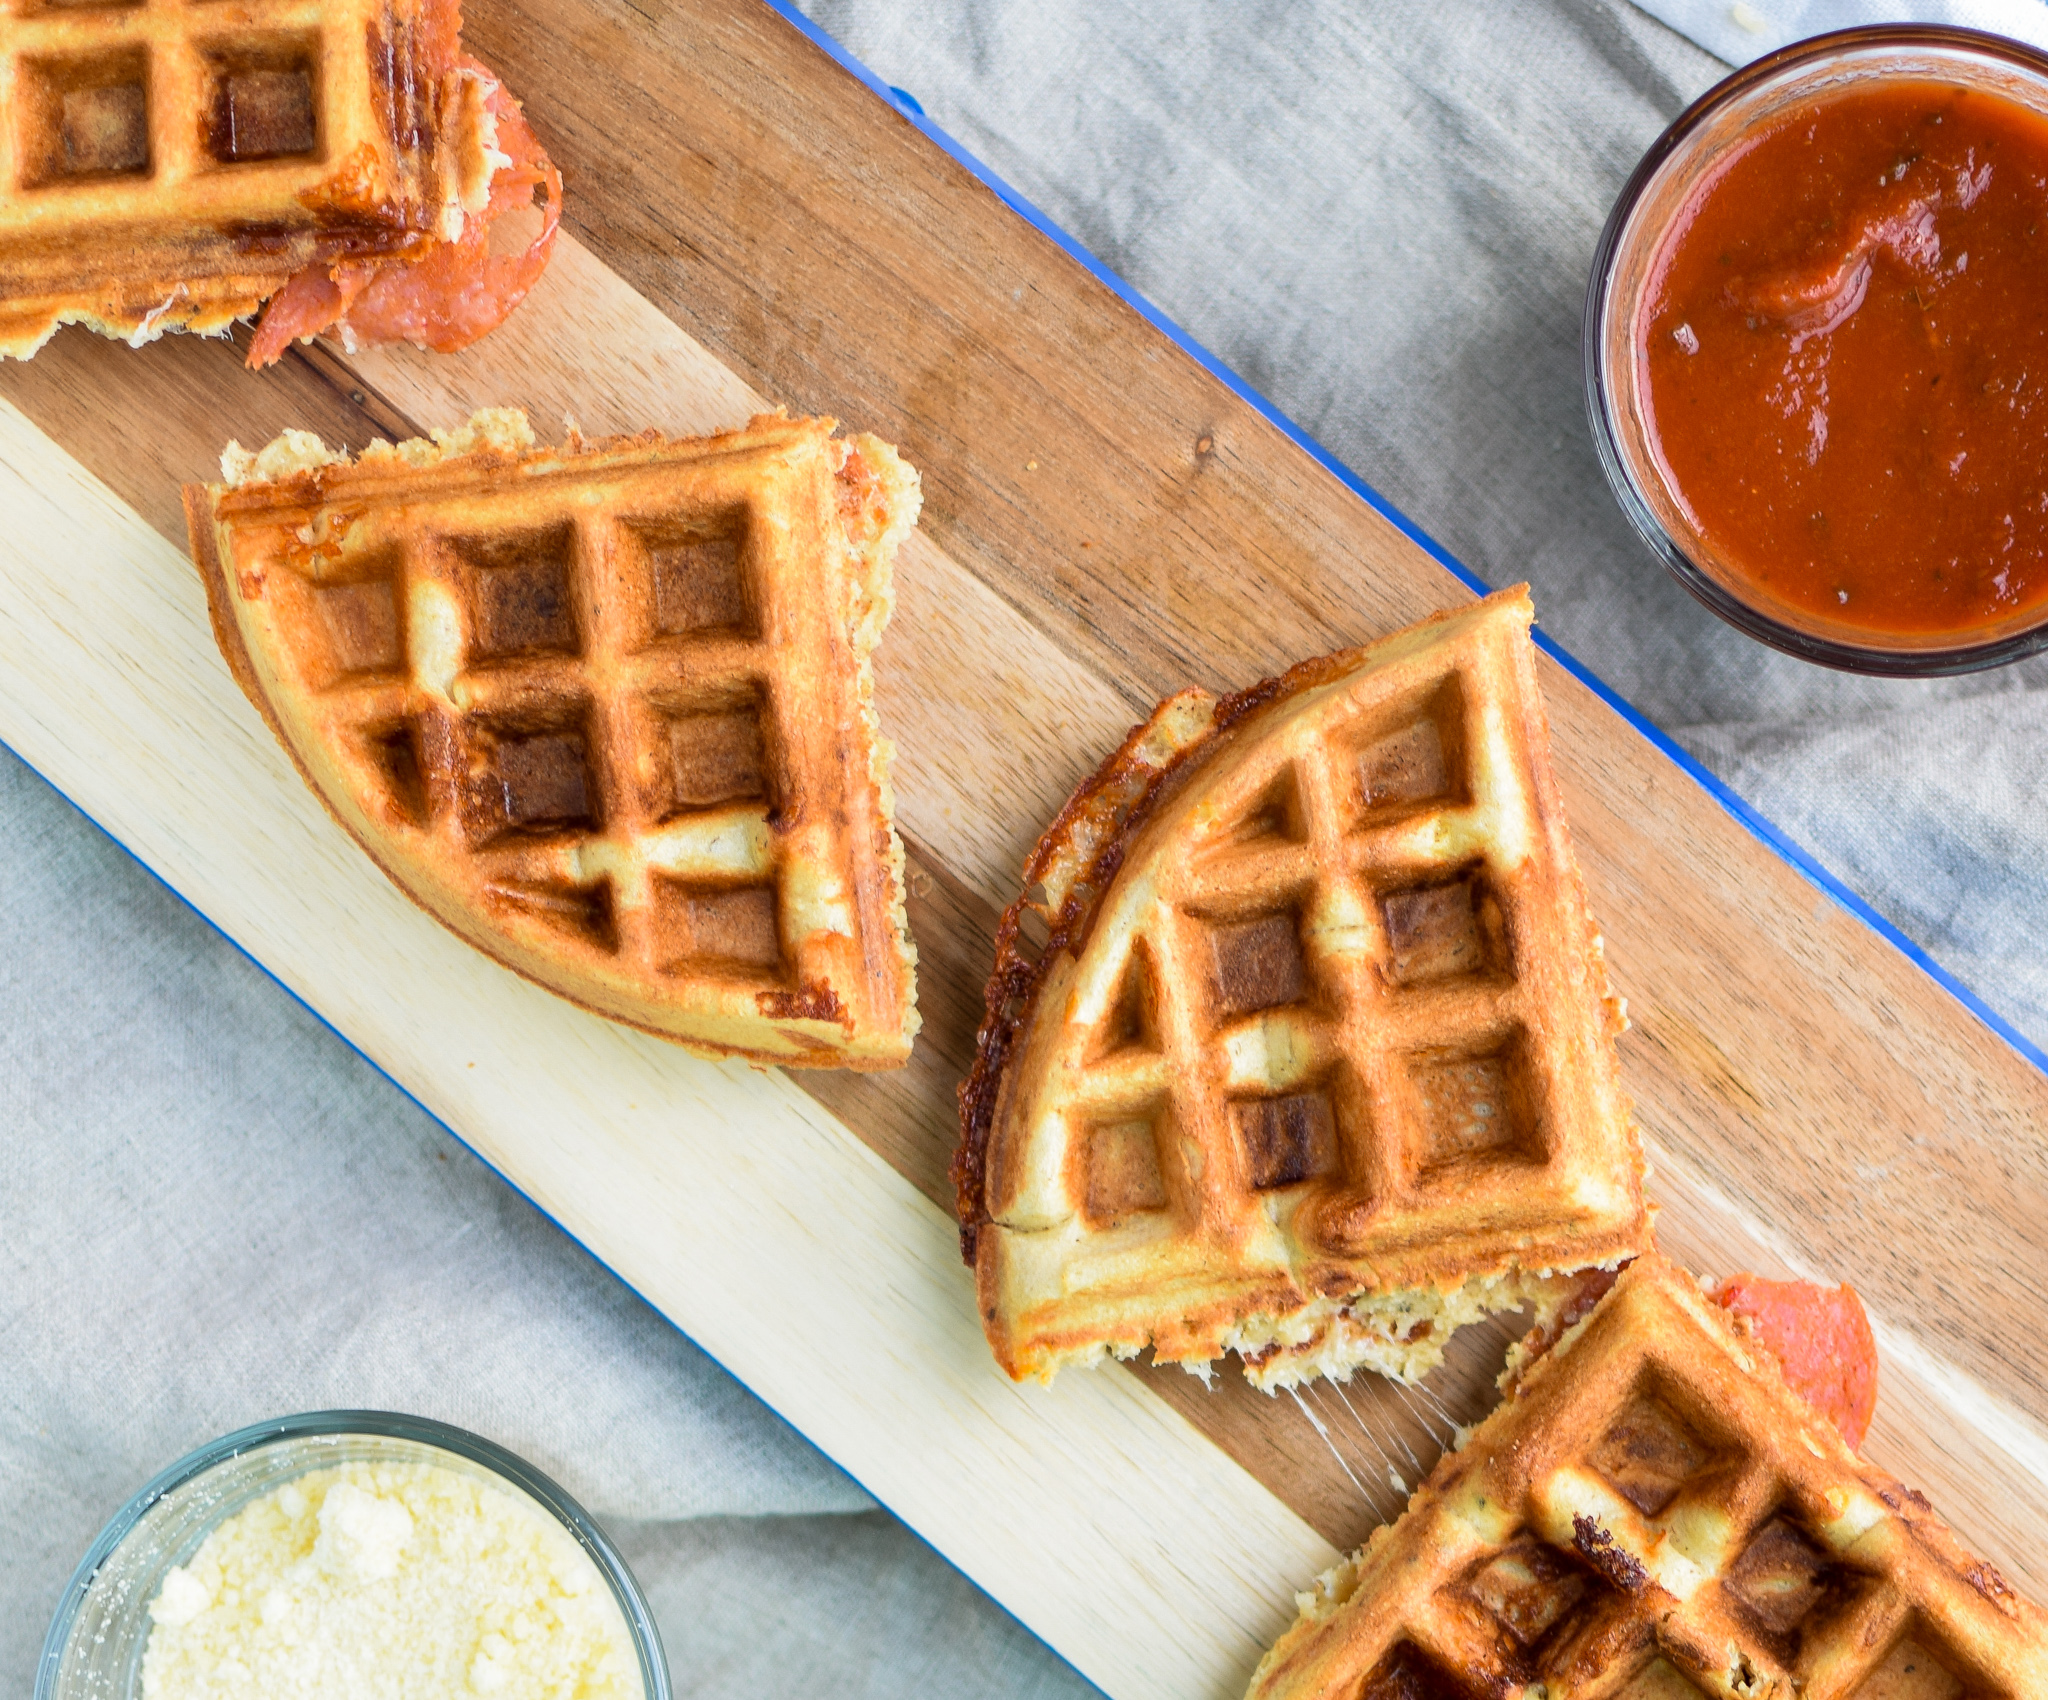 Protein Packed Pepperoni Pizza Waffles - Pizza + Waffles made super easy at home! Stuffed with mozzarella and pepperoni, plus packed with protein! - ProjectMealPlan.com